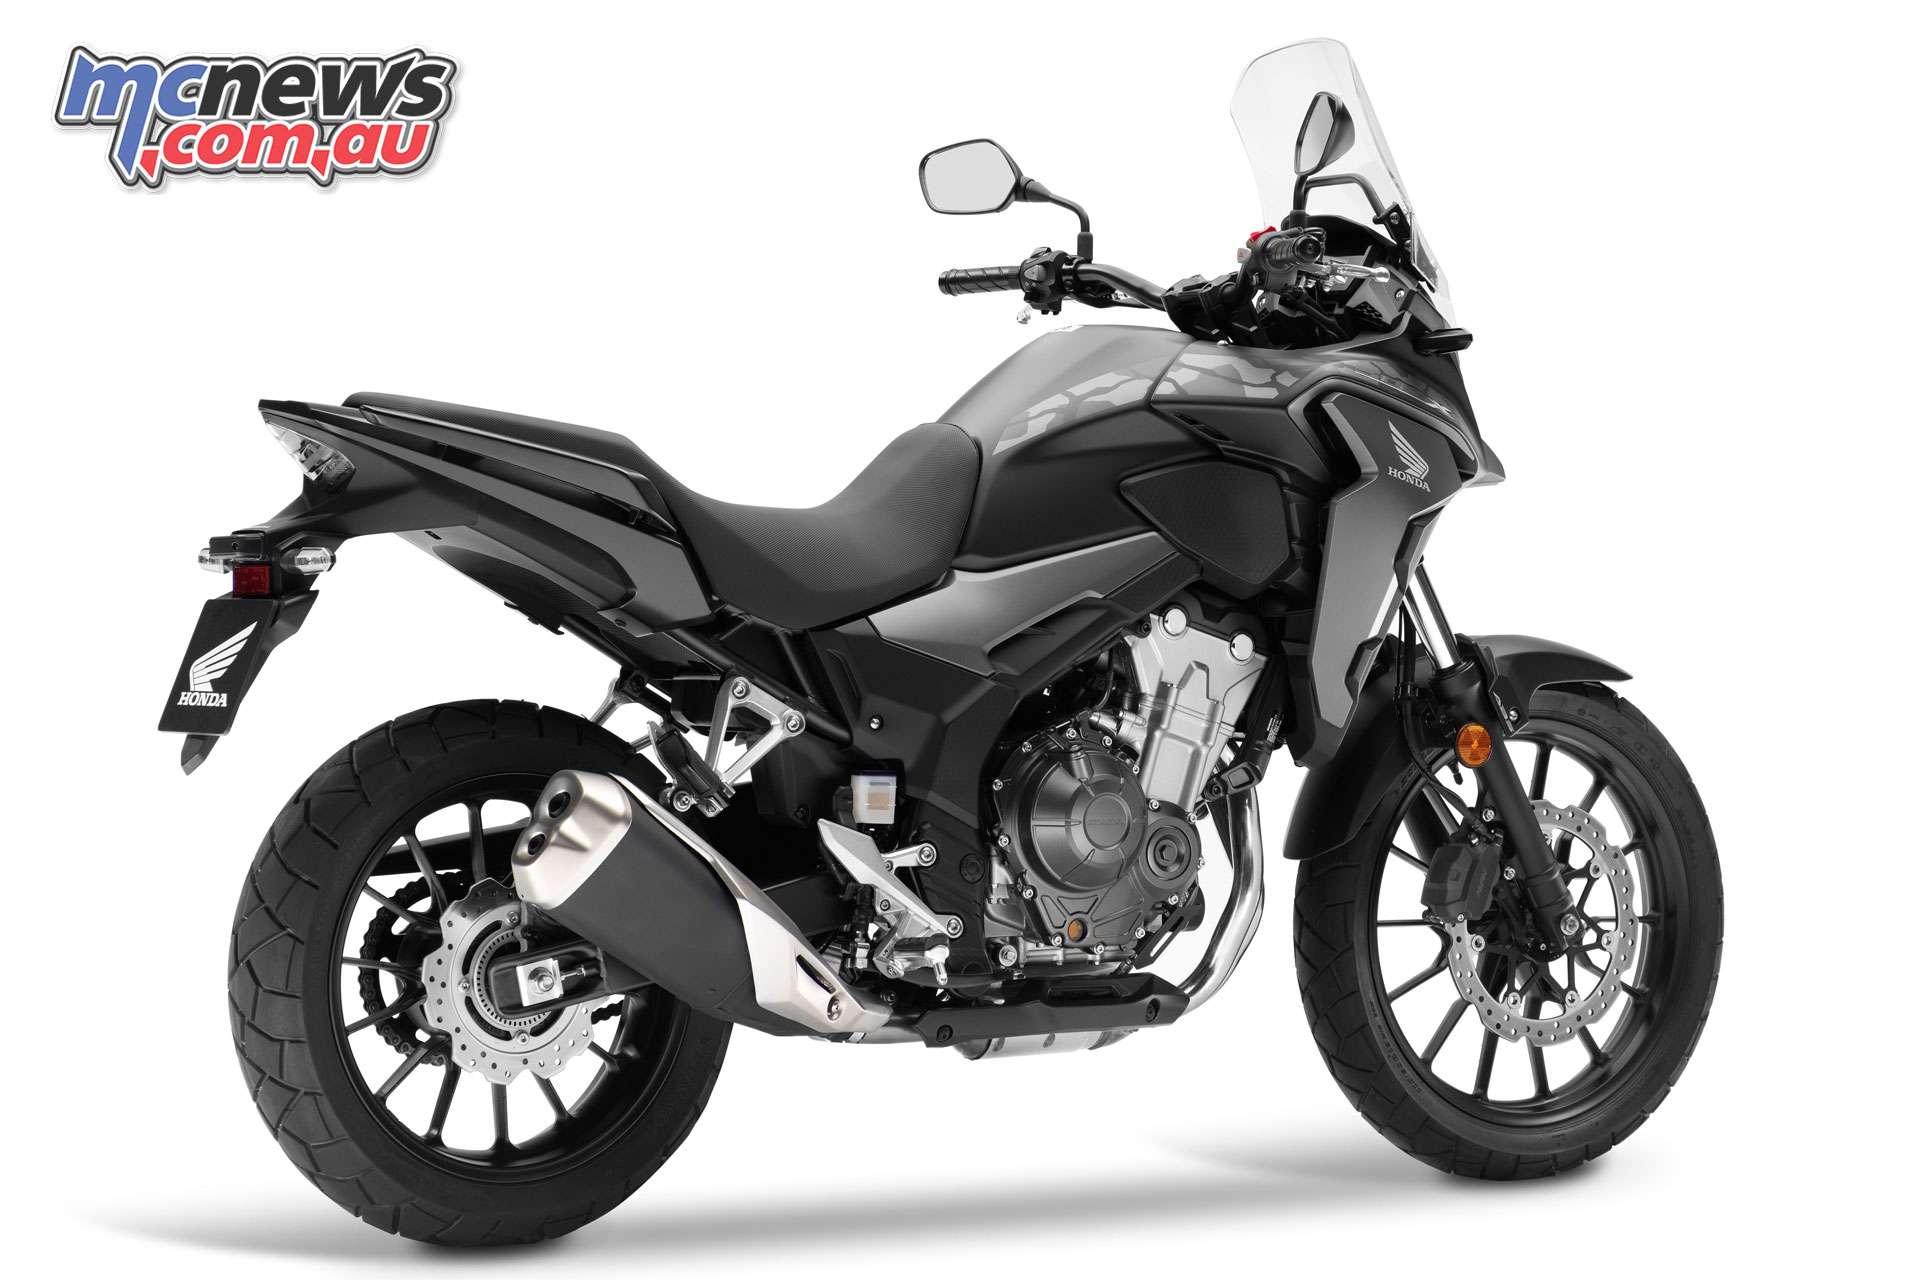 The 2019 Honda CB500X also features a new rear shock and longer suspension travel